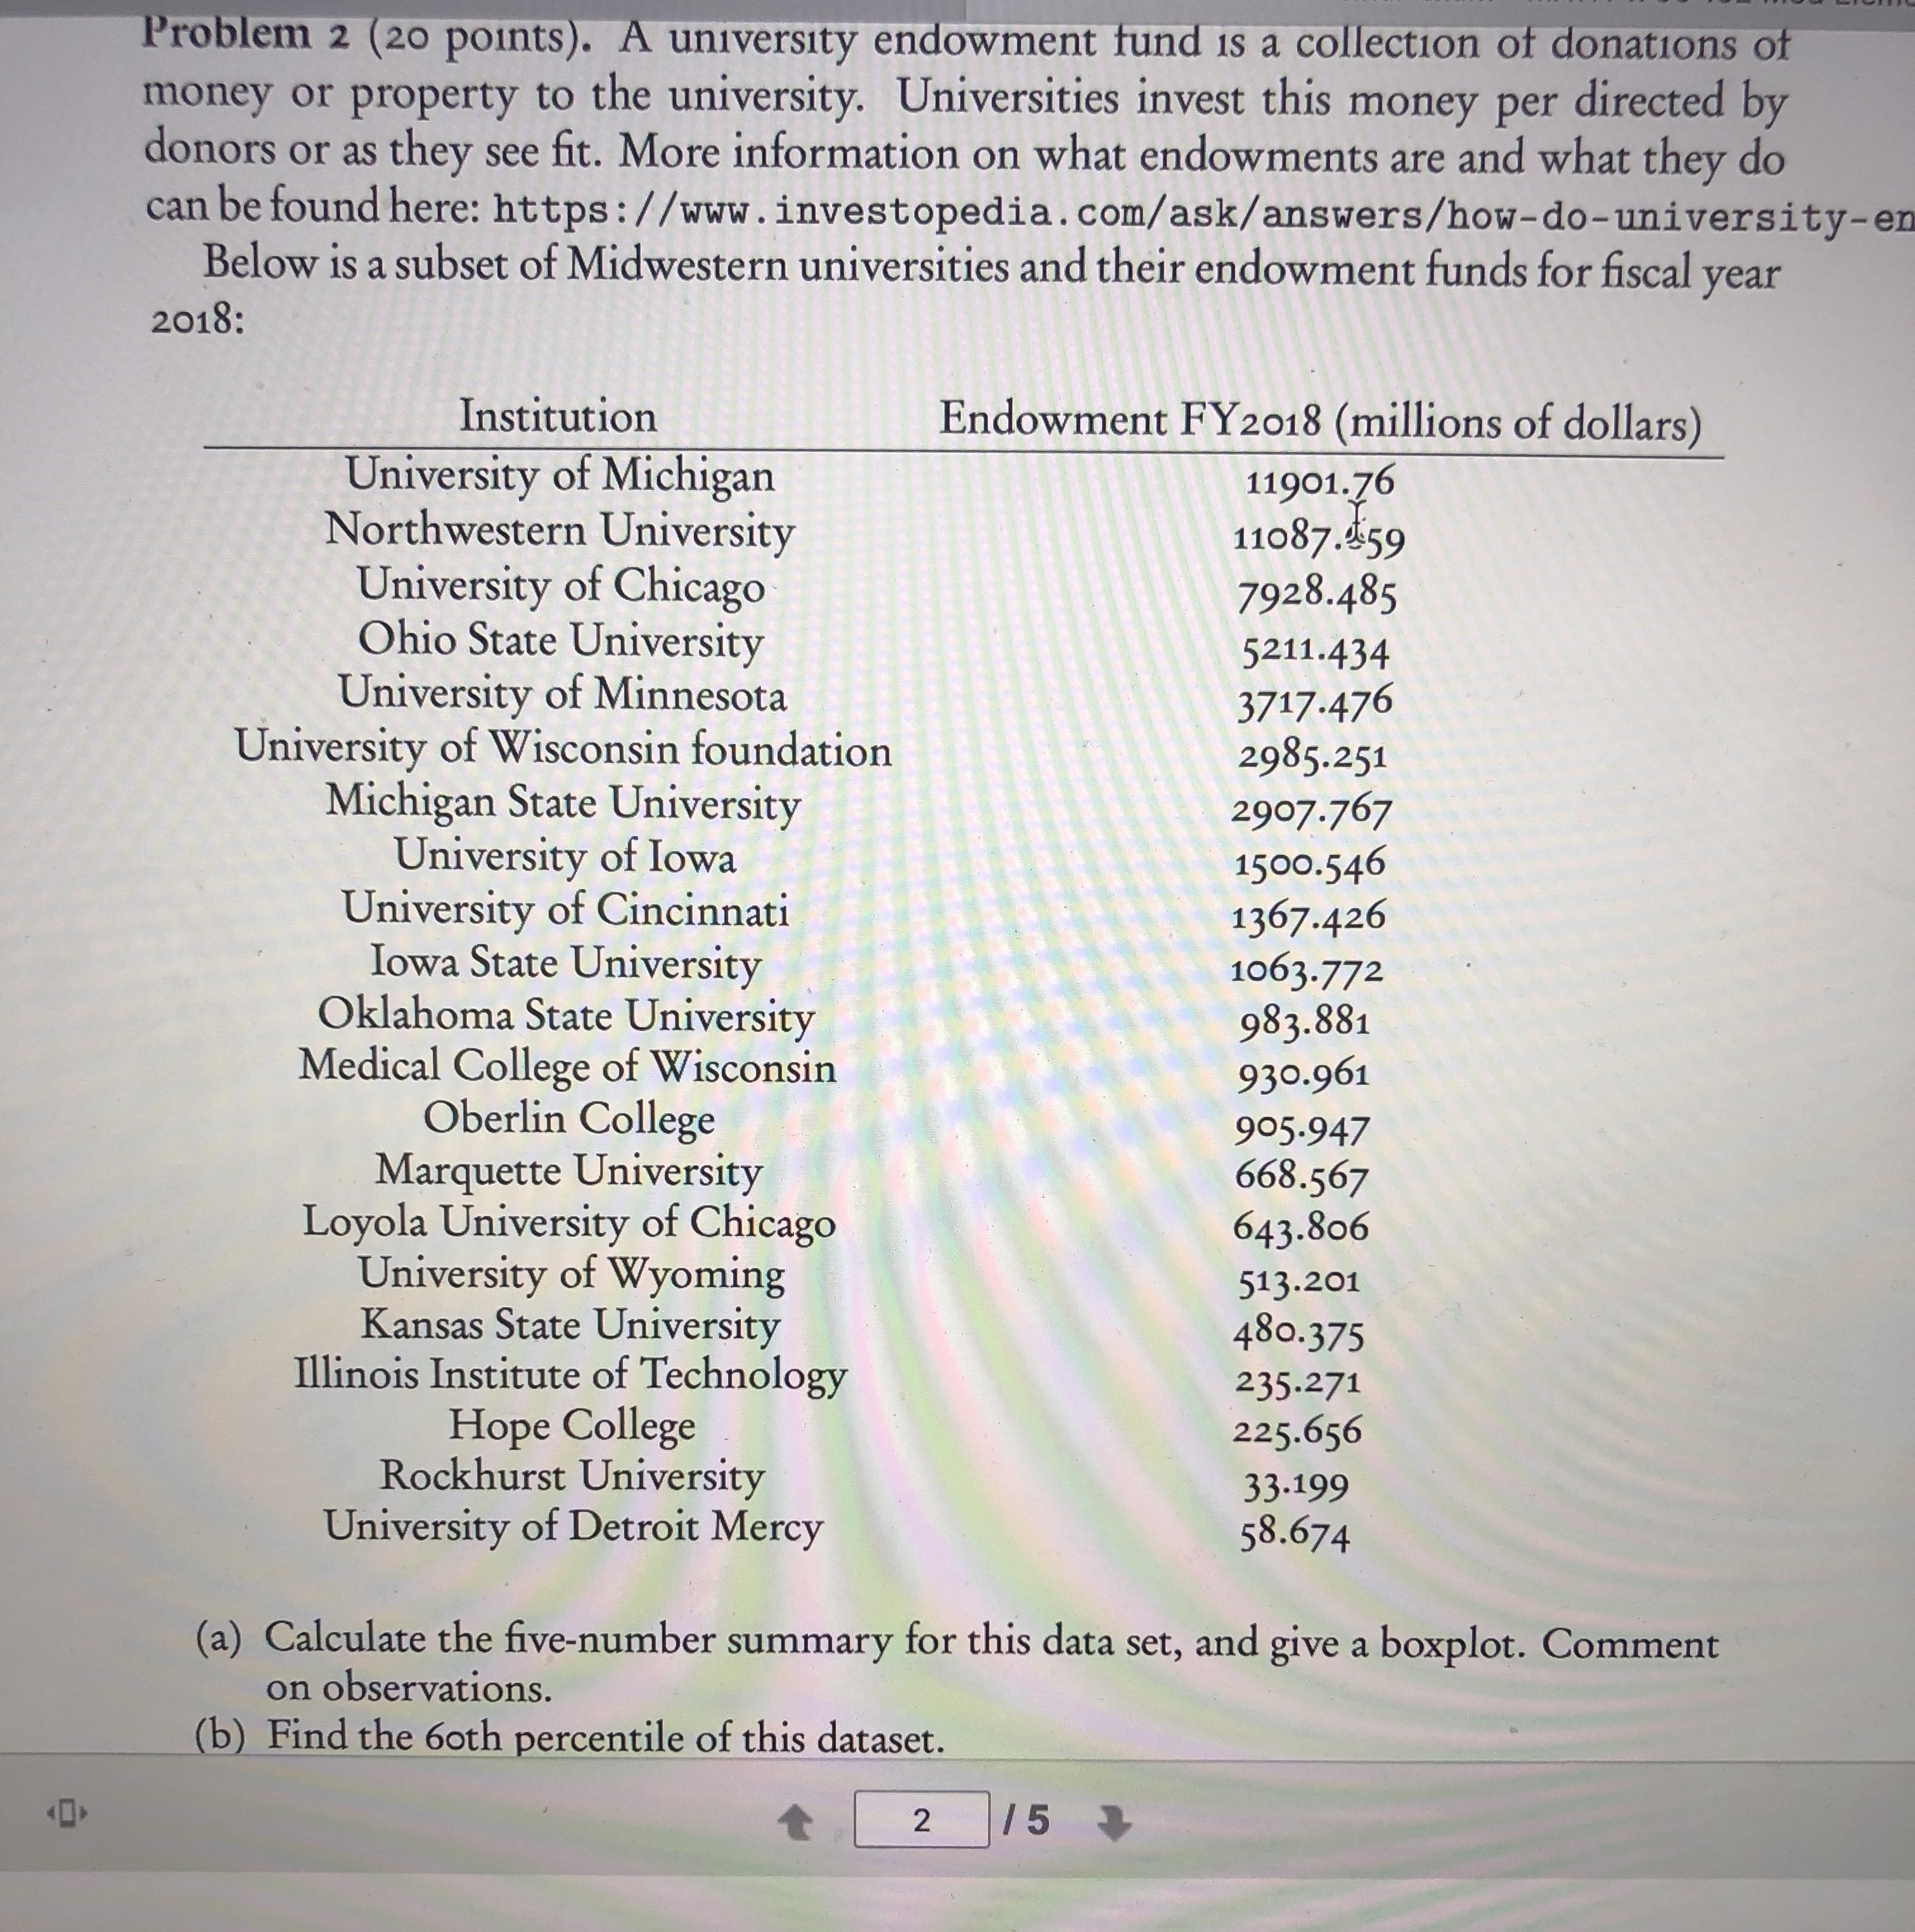 Problem 2 (20 points). A university endowment fund is a collection of donations of money or property to the university. Universities invest this money per directed by donors or as they see fit. More information on what endowments are and what they do can be found here: https://www.investopedia.com/ask/answers/how-do-university-en Below is a subset of Midwestern universities and their endowment funds for fiscal year 2018: Endowment FY2018 (millions of dollars) Institution University of Michigan Northwestern University University of Chicago Ohio State University University of Minnesota University of Wisconsin foundation Michigan State University University of Iowa University of Cincinnati Iowa State University Oklahoma State University Medical College of Wisconsin Oberlin College Marquette University Loyola University of Chicago University of Wyoming Kansas State University Illinois Institute of Technology Hope College Rockhurst University University of Detroit Mercy 11901.76 11087.459 7928.485 5211.434 3717.476 2985.251 2907.767 1500.546 1367.426 1063.772 983.881 930.961 905.947 668.567 643.806 513.201 480.375 235.271 225.656 33.199 58.674 (a) Calculate the five-number summary for this data set, and give a boxplot. Comment on observations. (b) Find the 6oth percentile of this dataset. /5